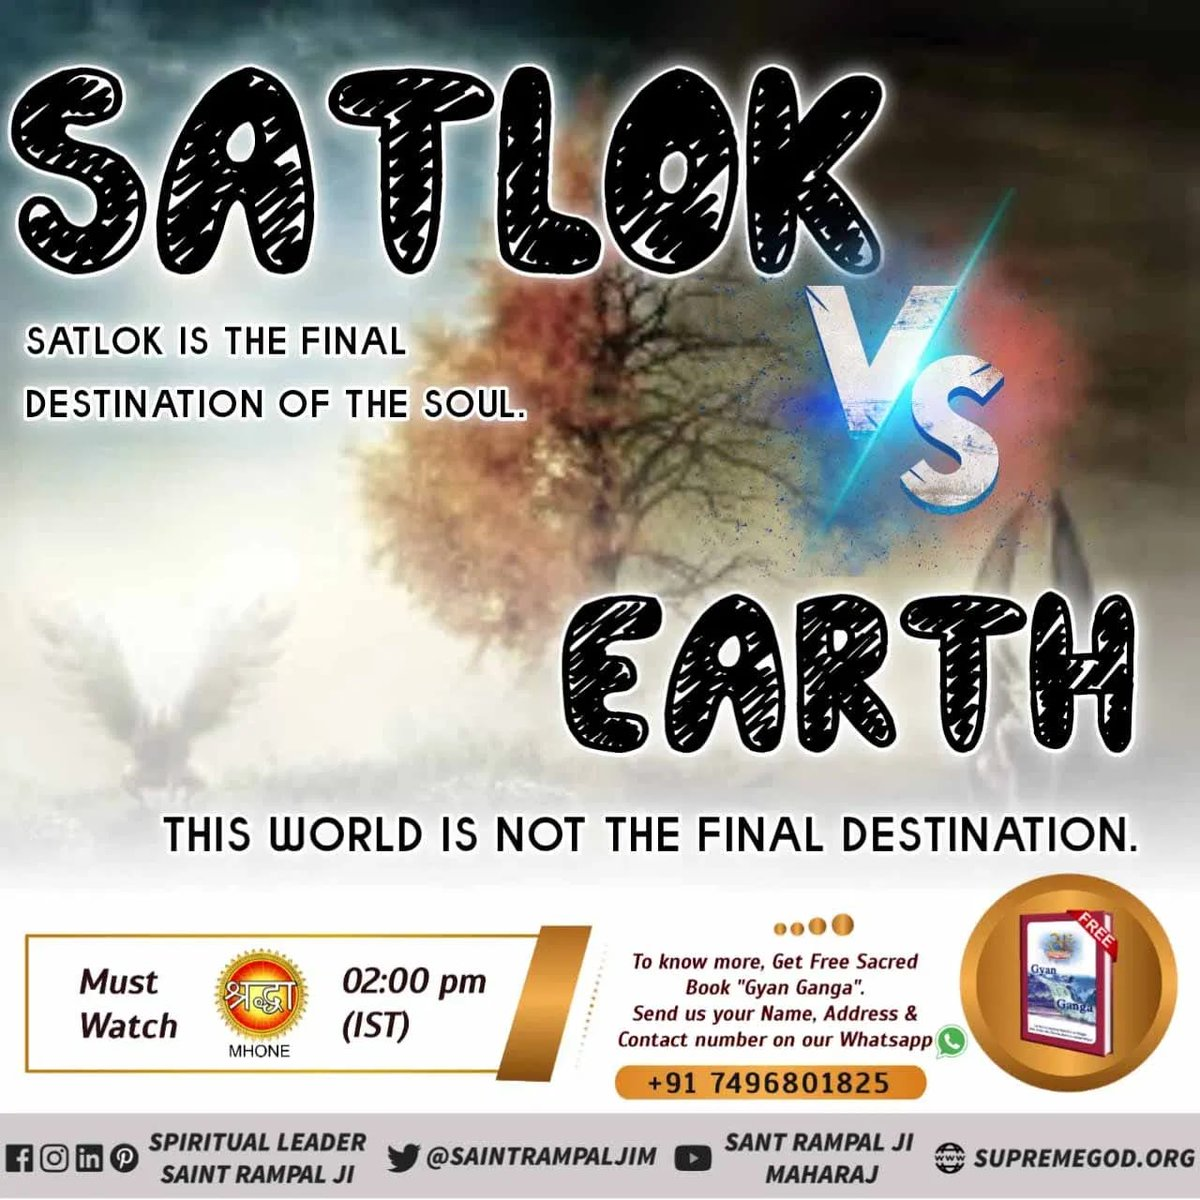 #FridayMotivation SATLOK SATLOK is the final destination of the SOUL 🎀🎀 Earth The world is not the final destination of the soul. 🎐🎐 Watch Sadhana TV 7;30 PM.